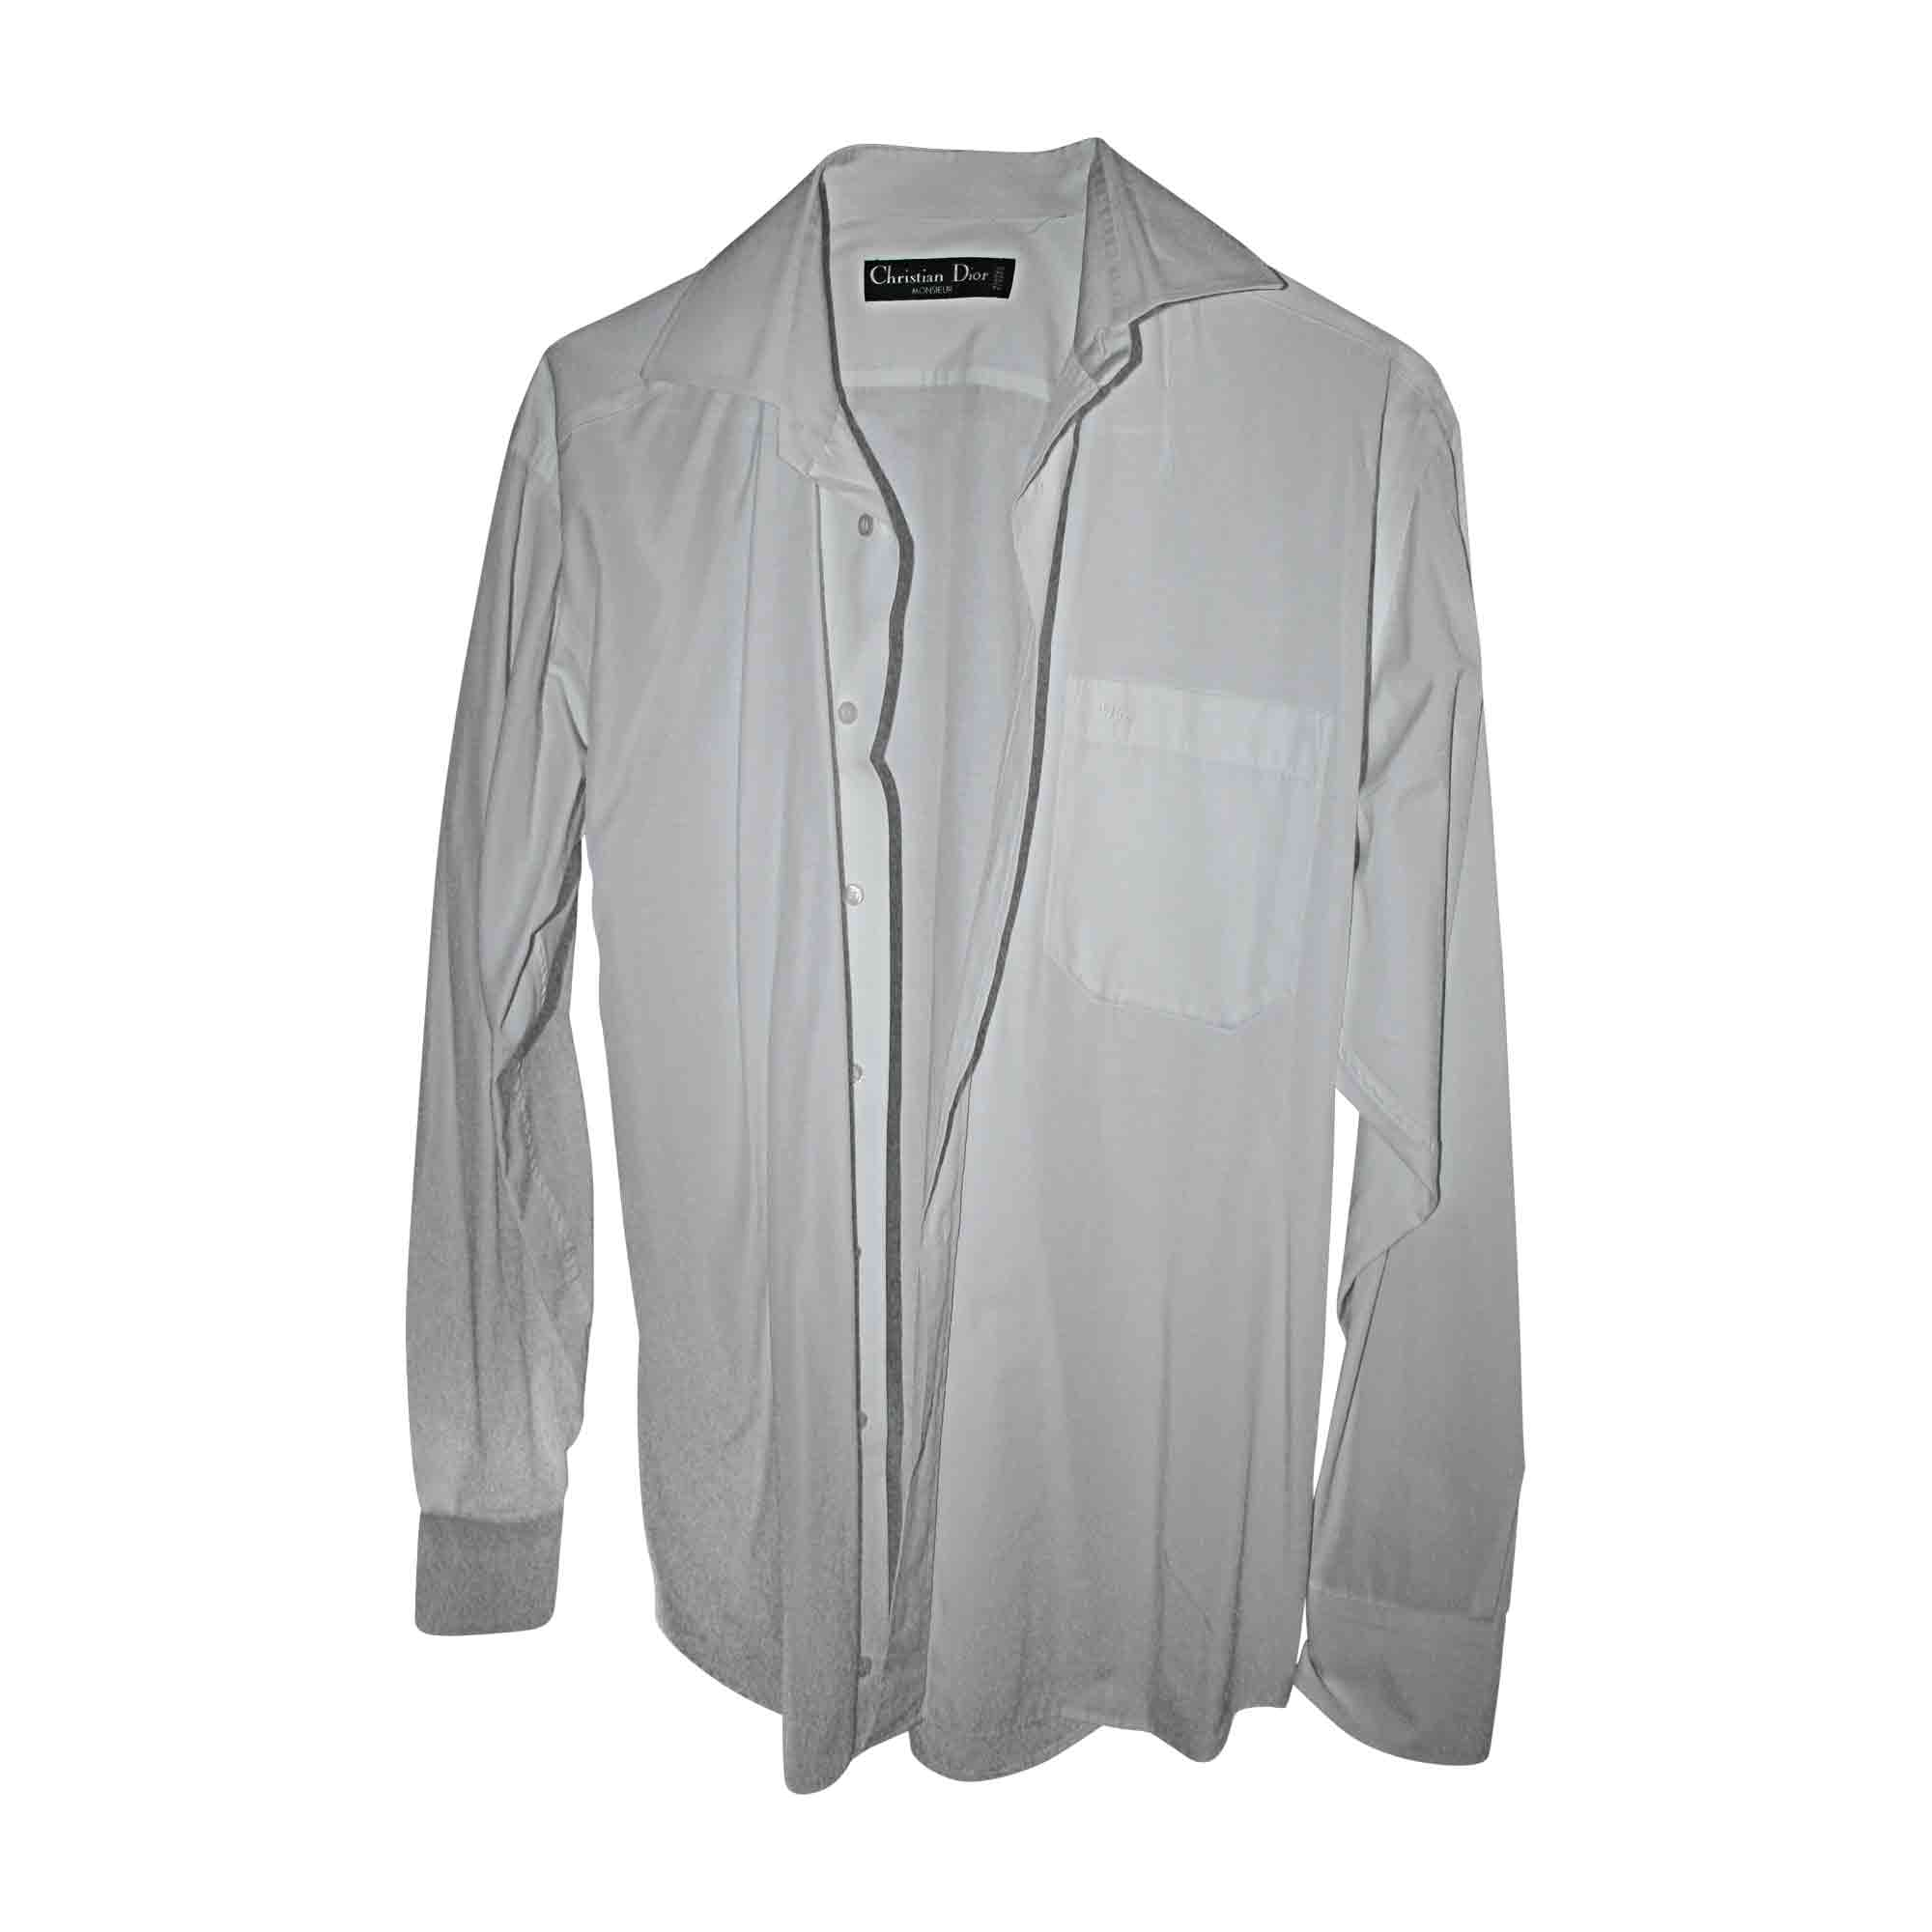 Chemise DIOR HOMME 39 40 (M) blanc - 6538506 2184dee5566